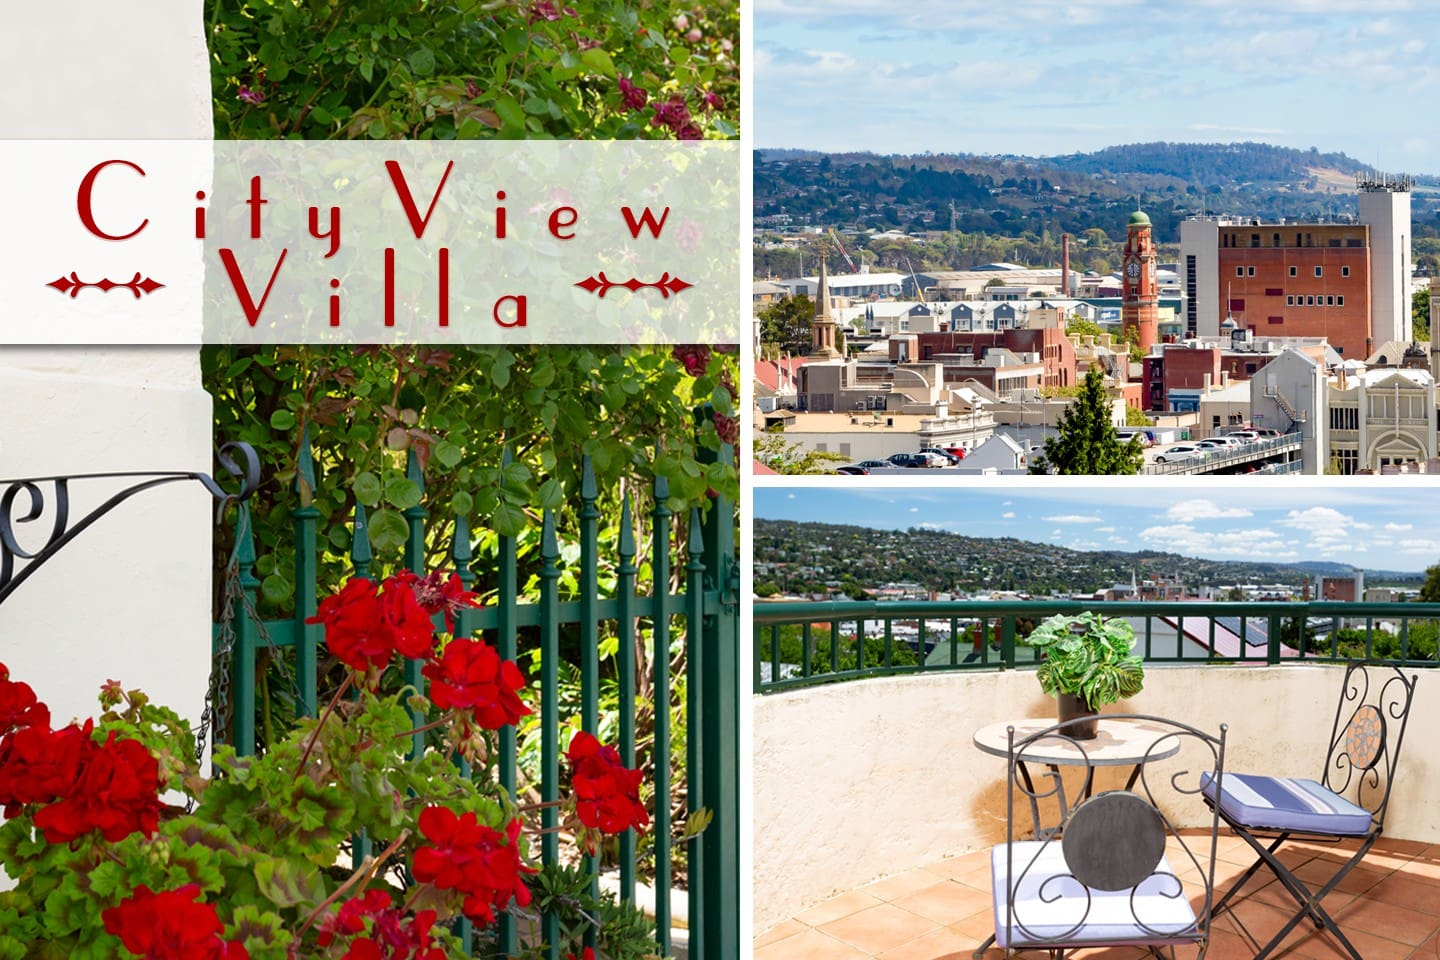 It's certainly not called CITY VIEW VILLA for nothing : )